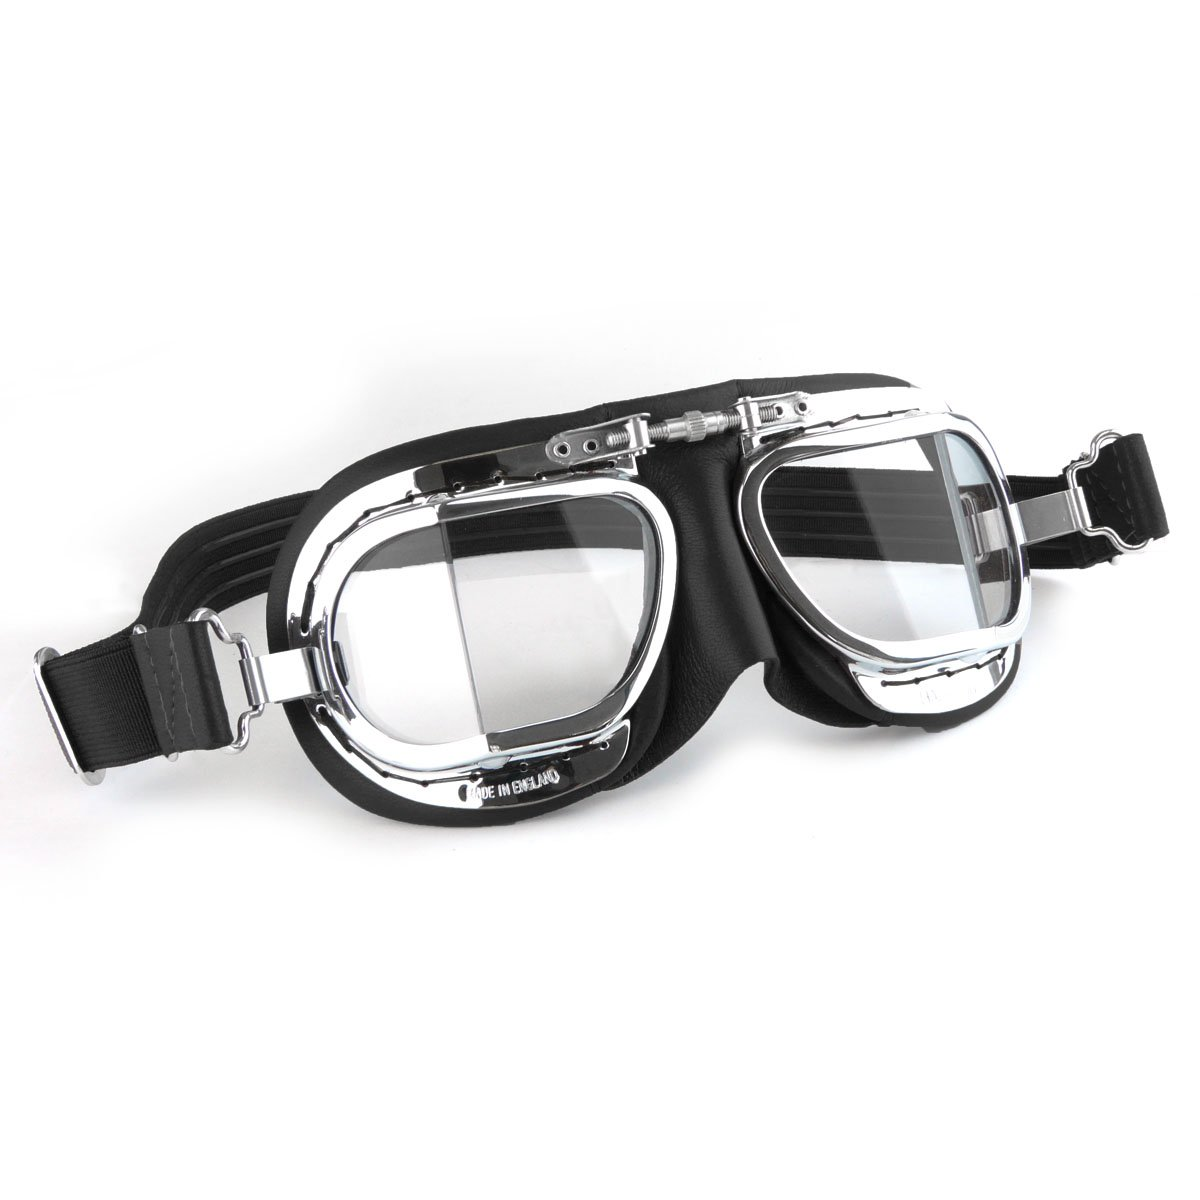 Halcyon Compact Classic Motorcycle Goggles / Flying Goggles - Brown Leather